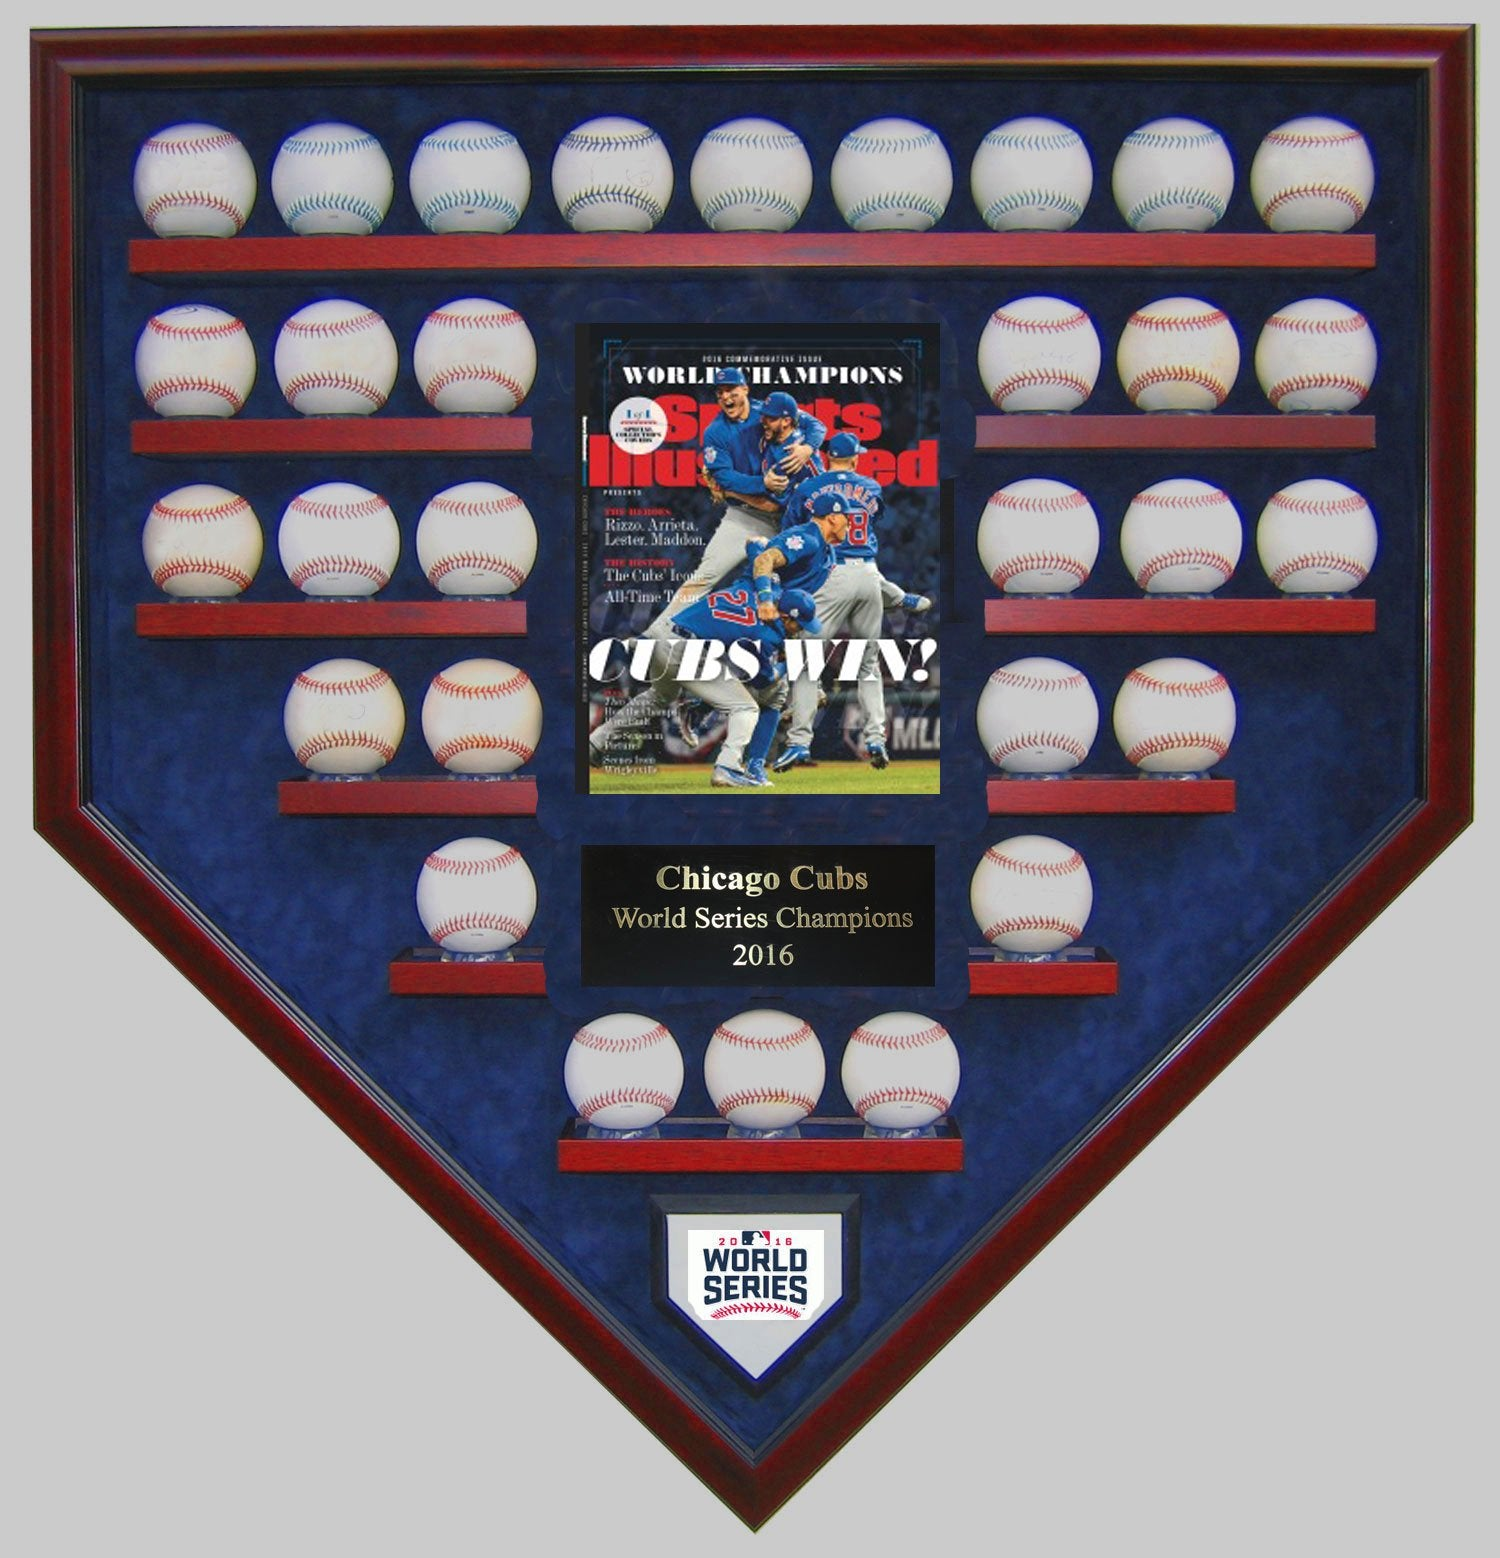 30 BASEBALL W/SI CHICAGO CUBS 2016 WORLD SERIES HOMEPLATE SHAPED DISPLAY CASE-Powers Sports Memorabilia